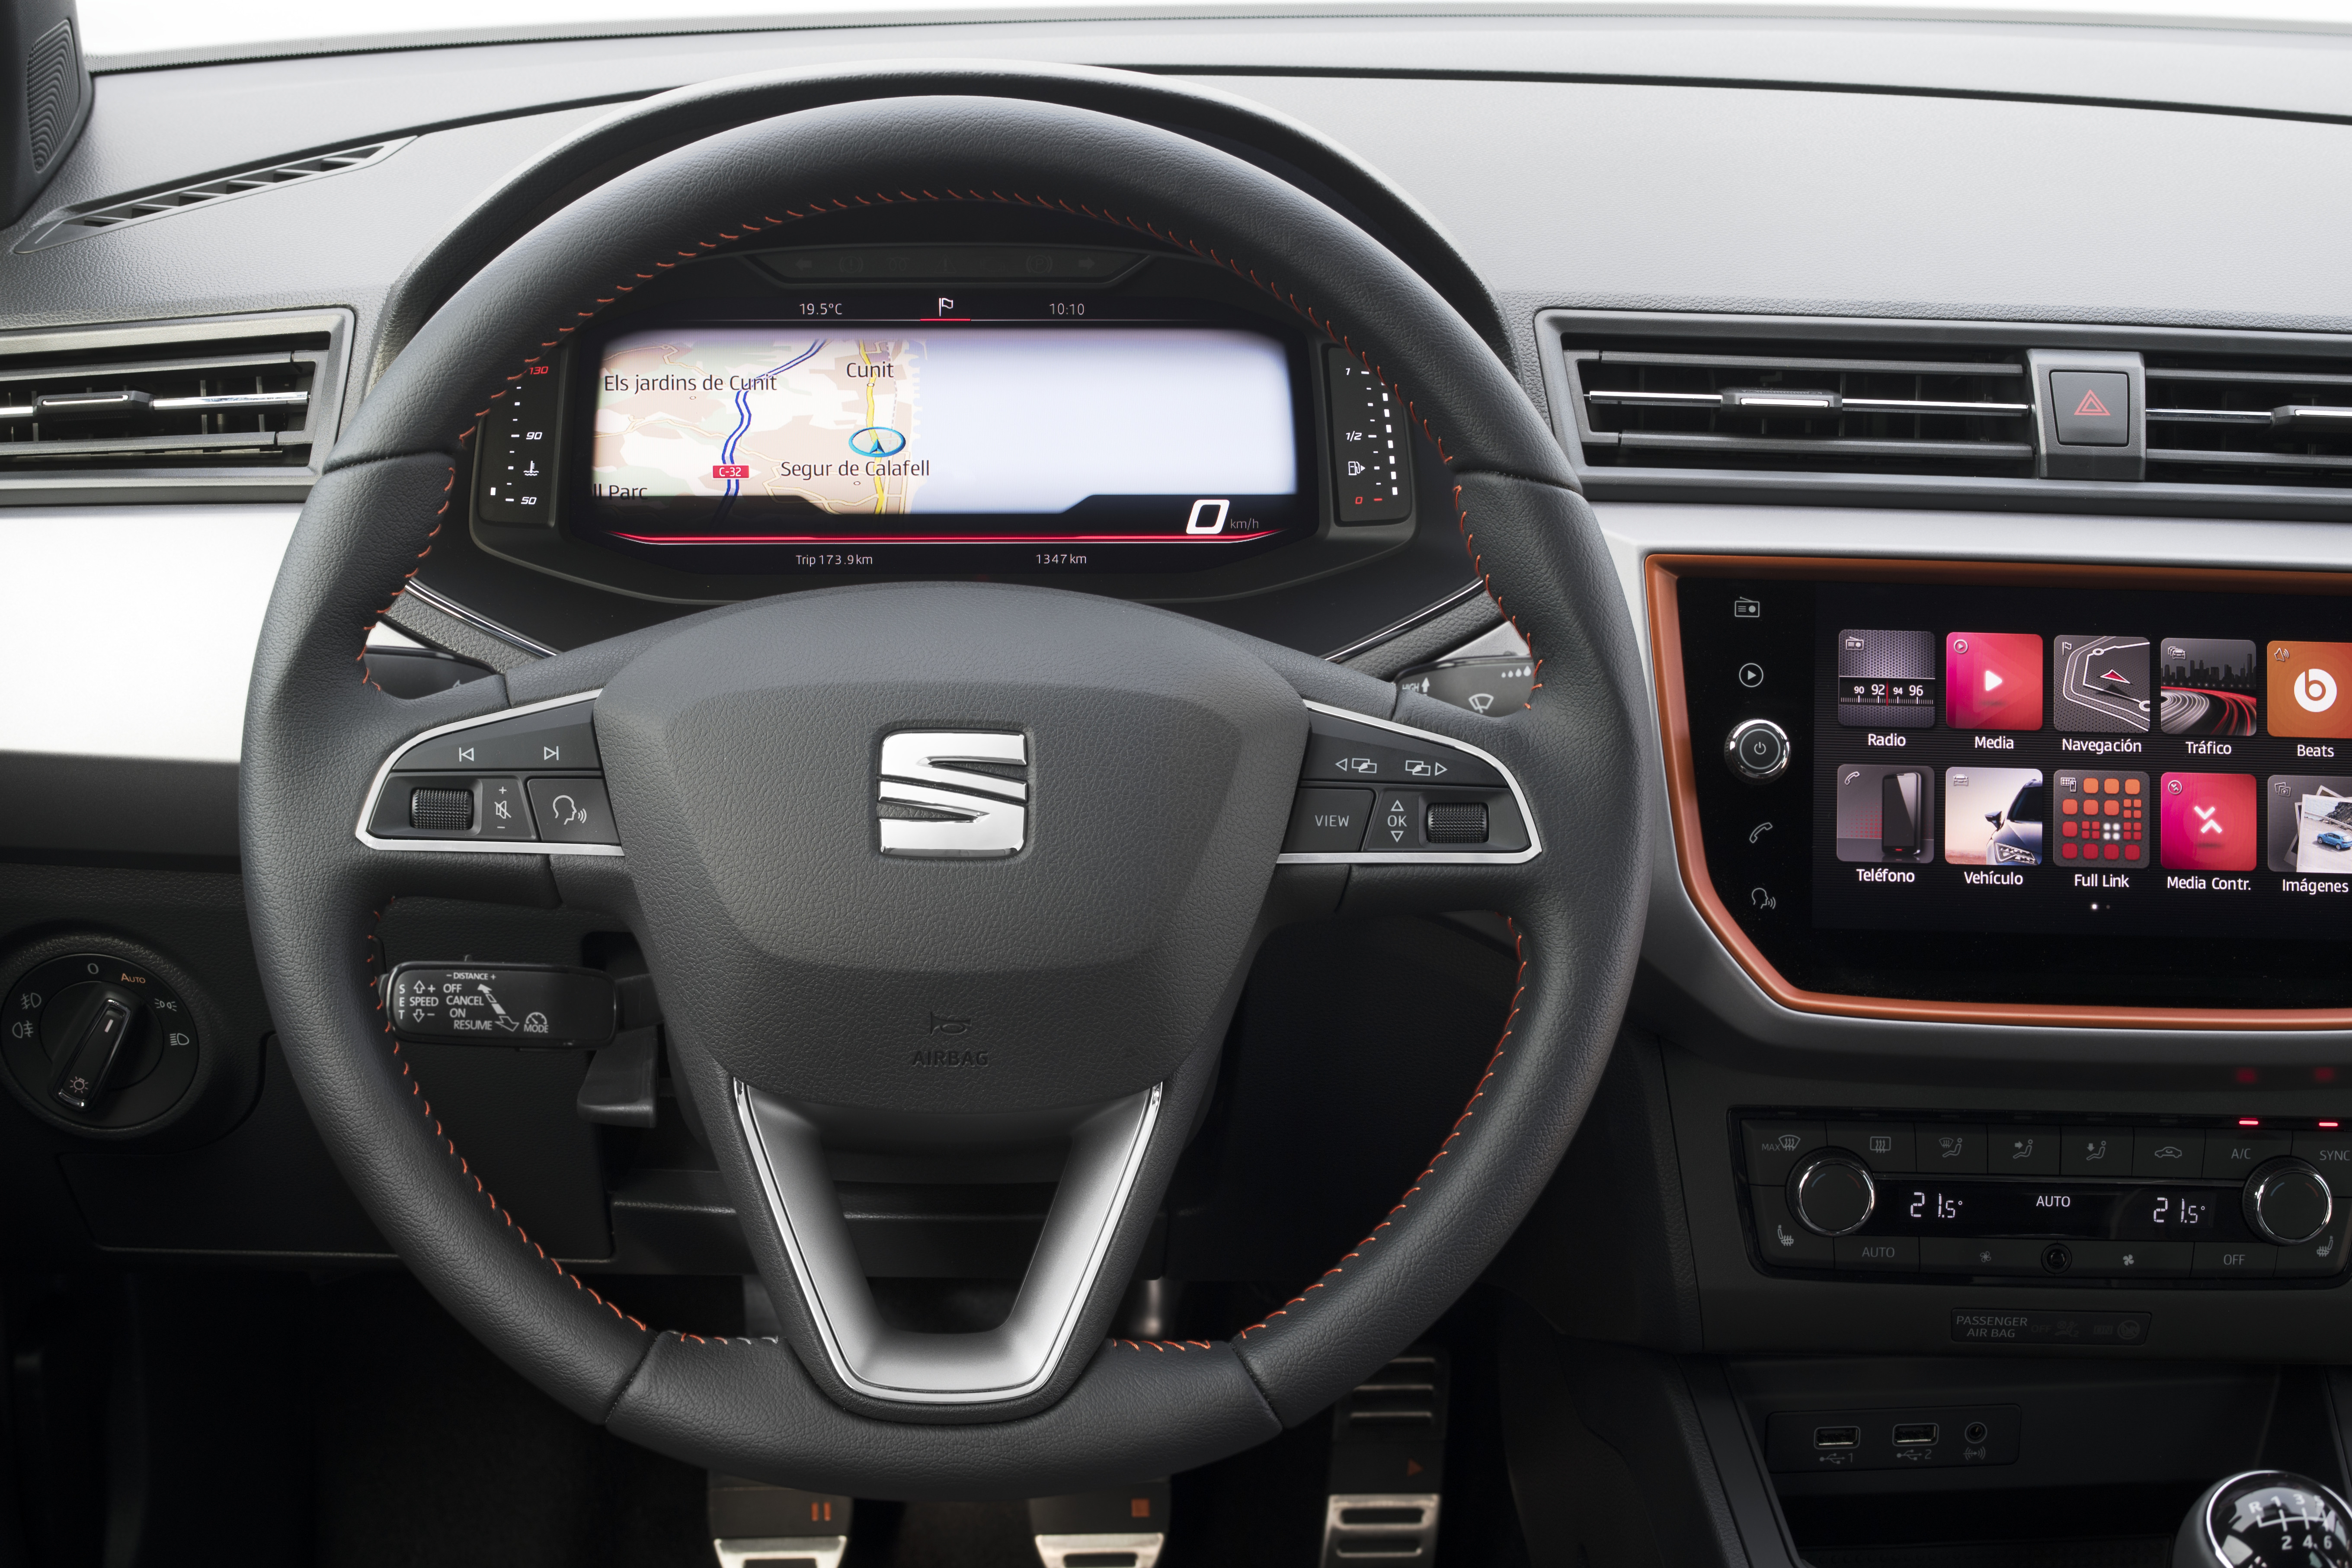 SEAT Digital Cockpit for Arona and Ibiza